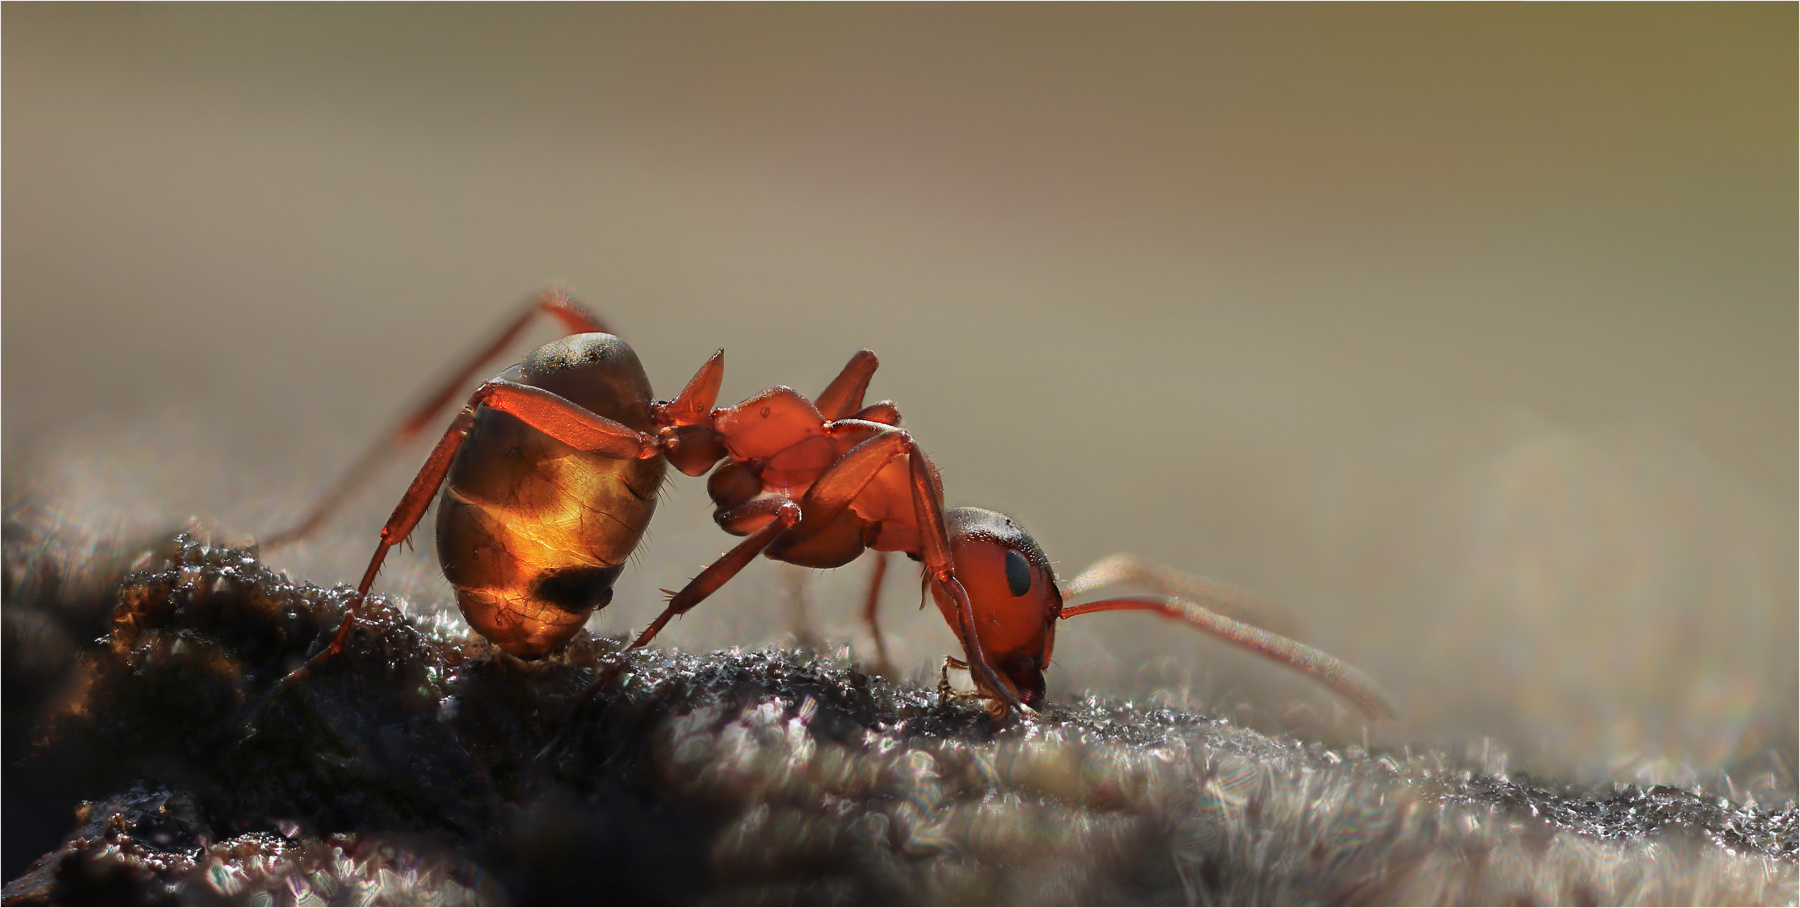 Ants...two